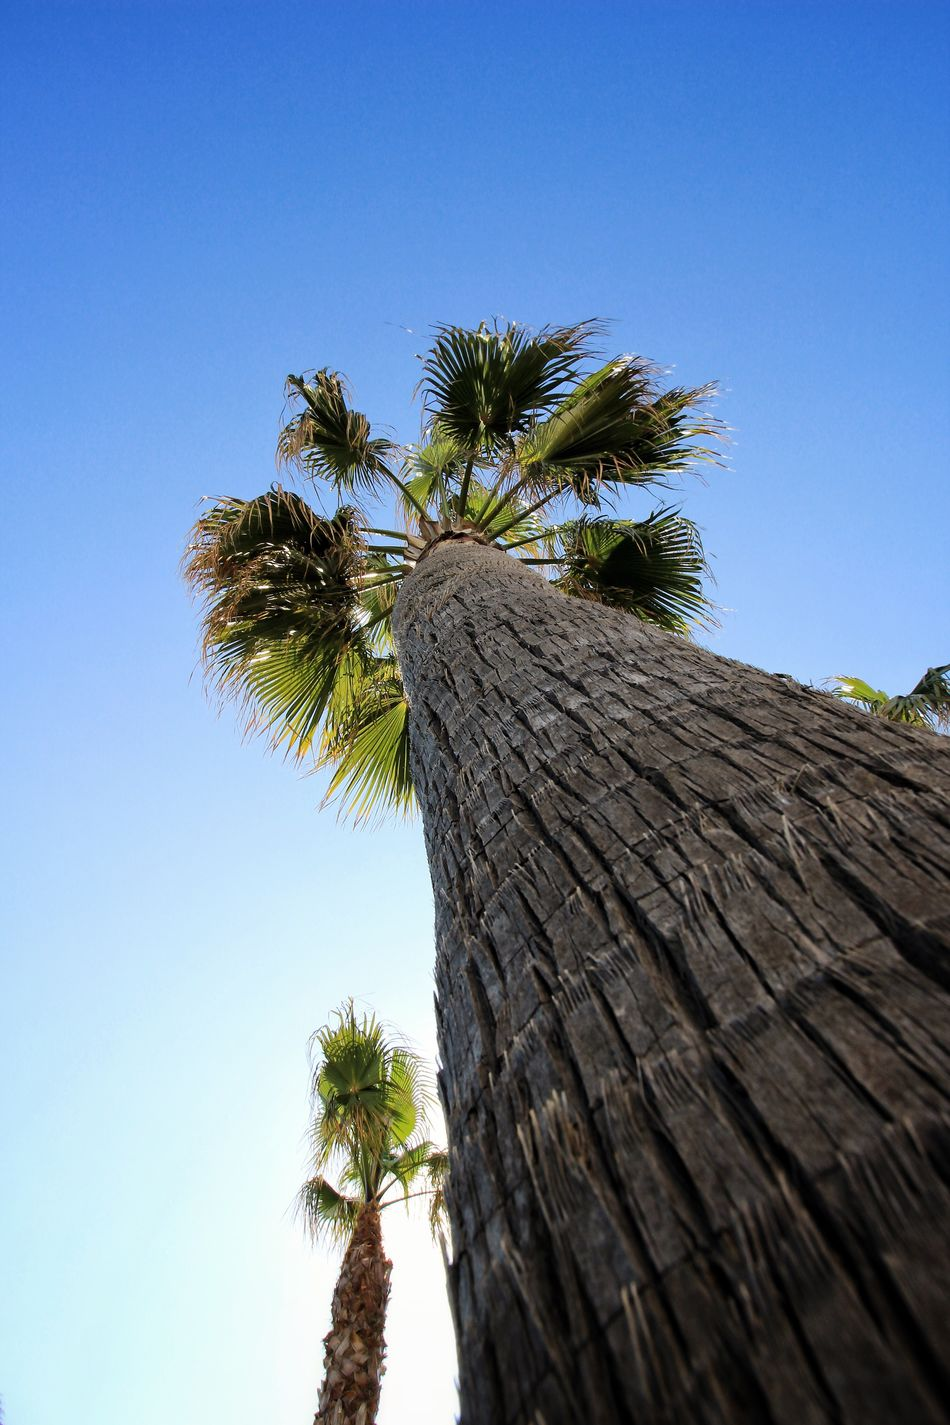 Blue Sky Palm Tree Low Angle View Clear Sky Tree Blue Green Color Tranquility Palm Frond Palm Tree And Blue Sky Palm Tree And Sky Palm Tree Trunk Looking Up At The Sky Palms PalmsTrees Palmtrees Palm Trees Palmtree Close-up Palm Palm Fronds Looking Up Sky Tree Trunk Tree